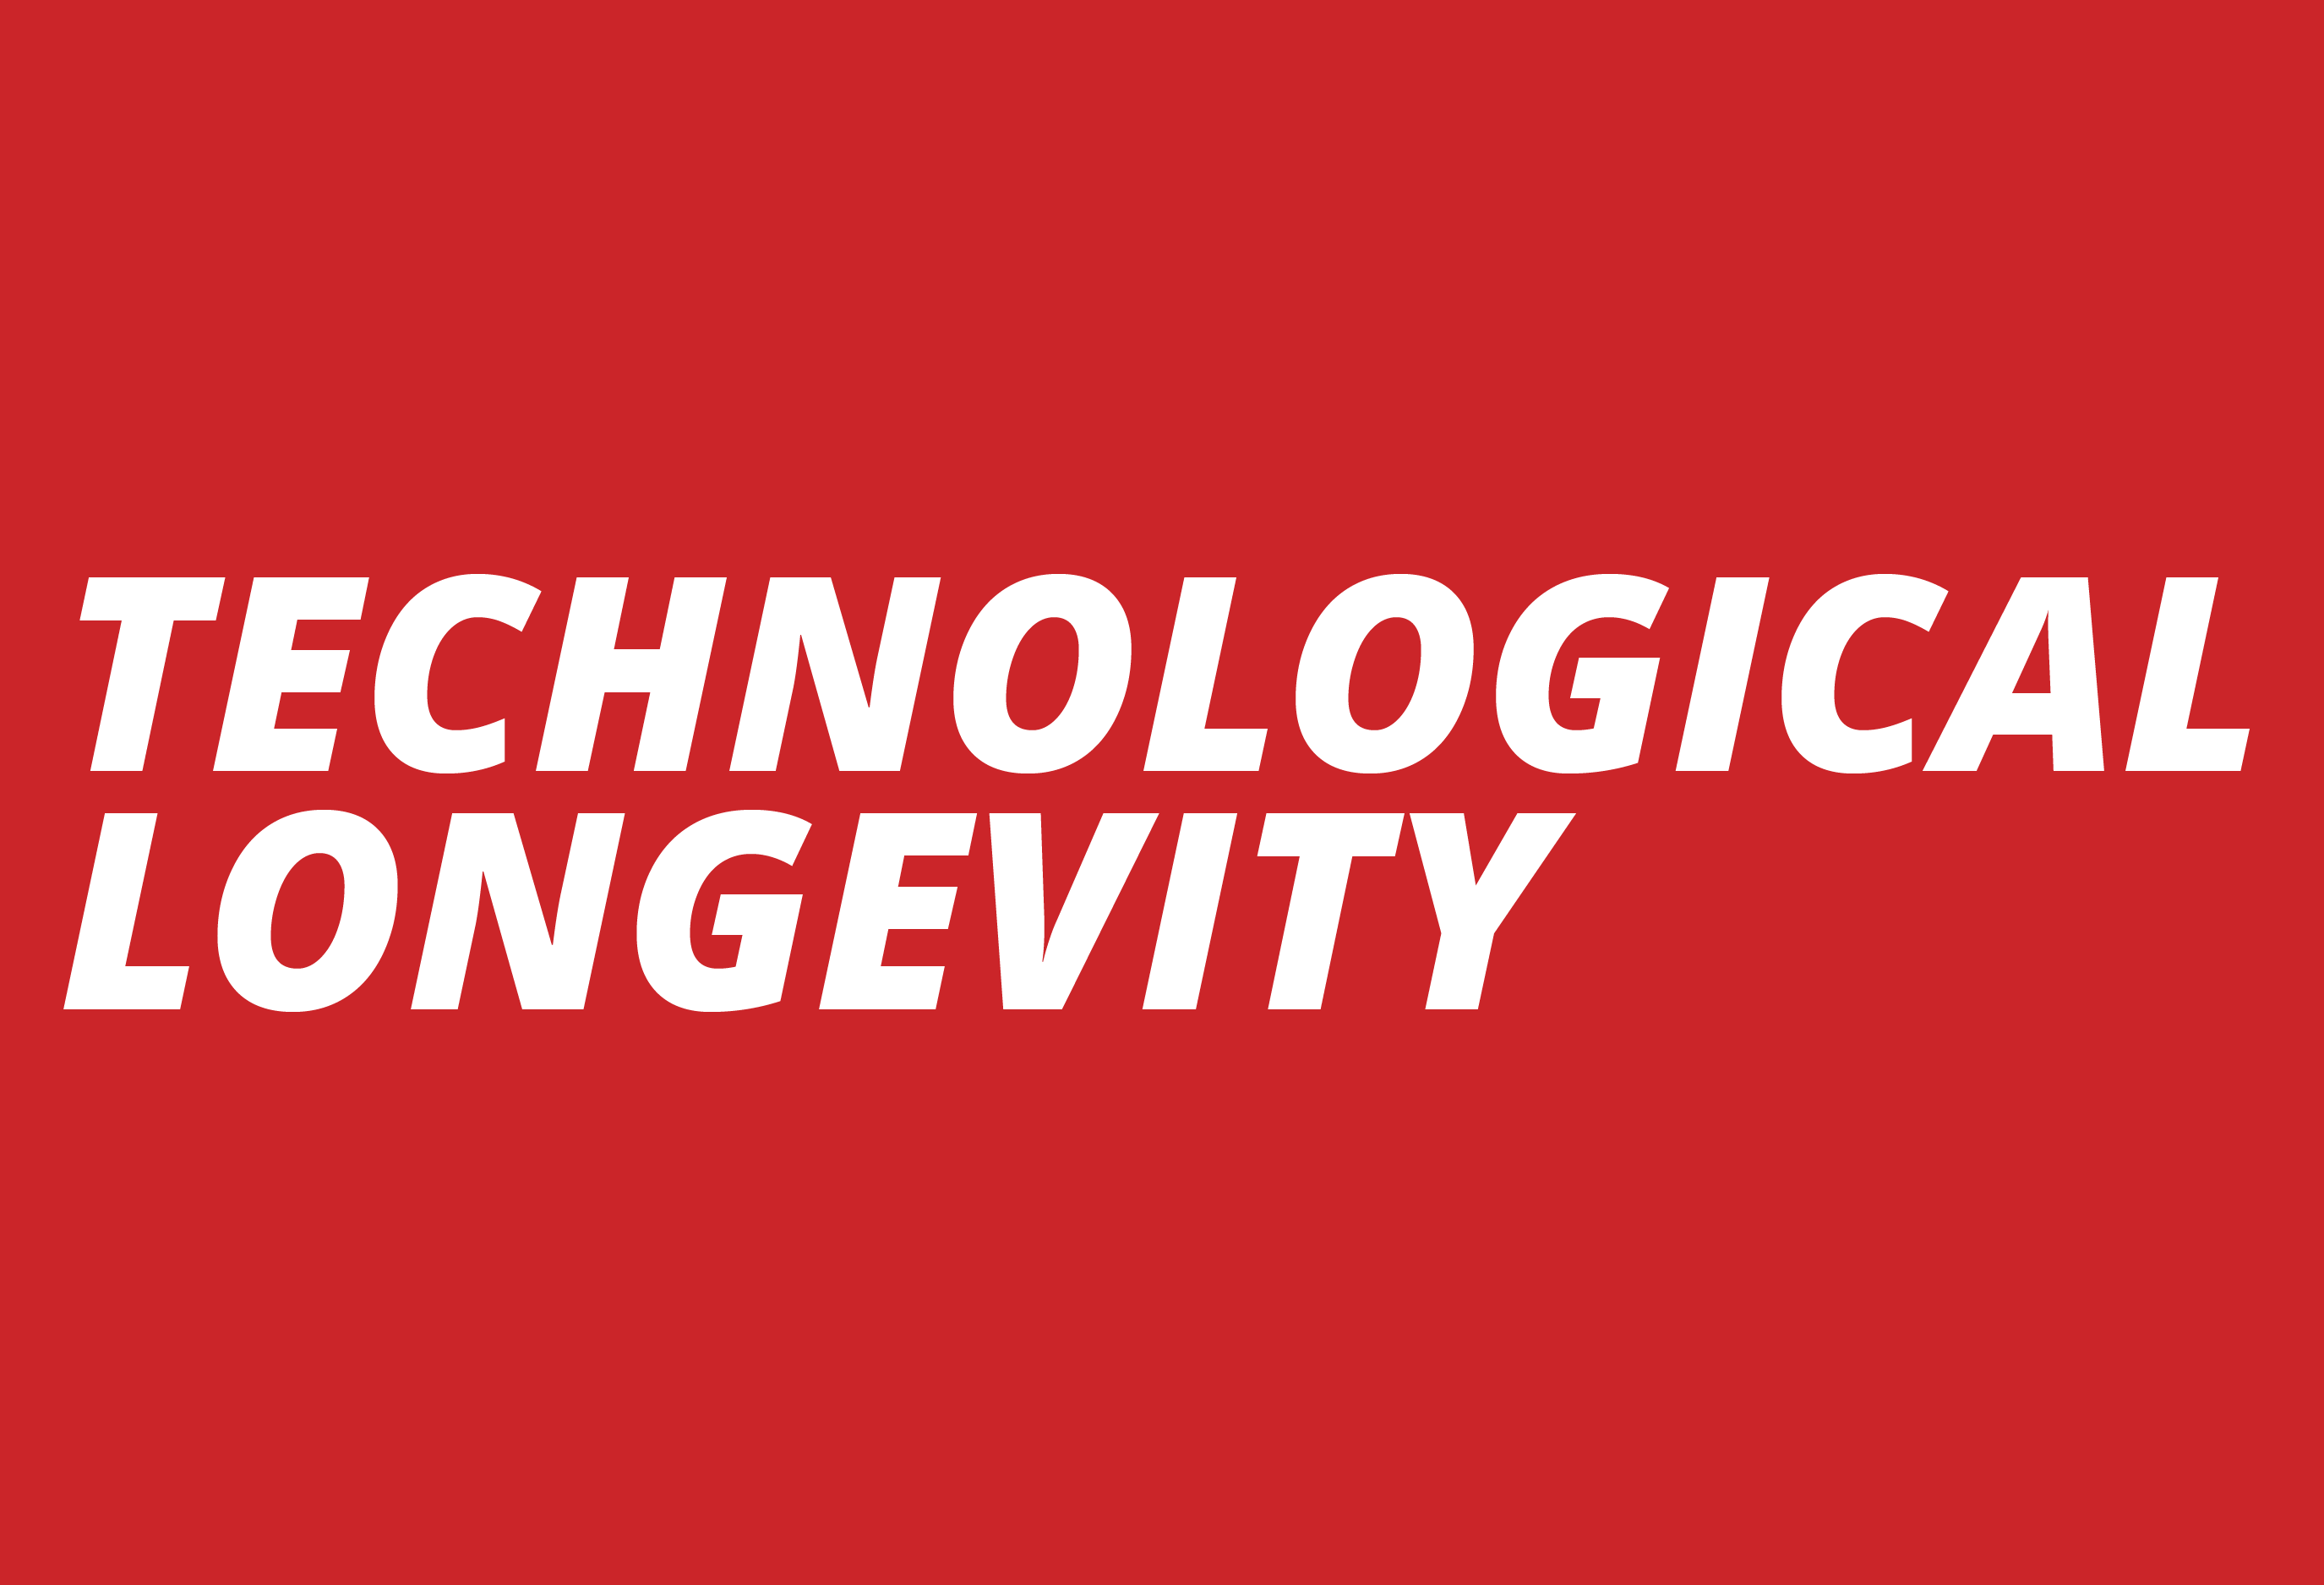 Technological Longevity